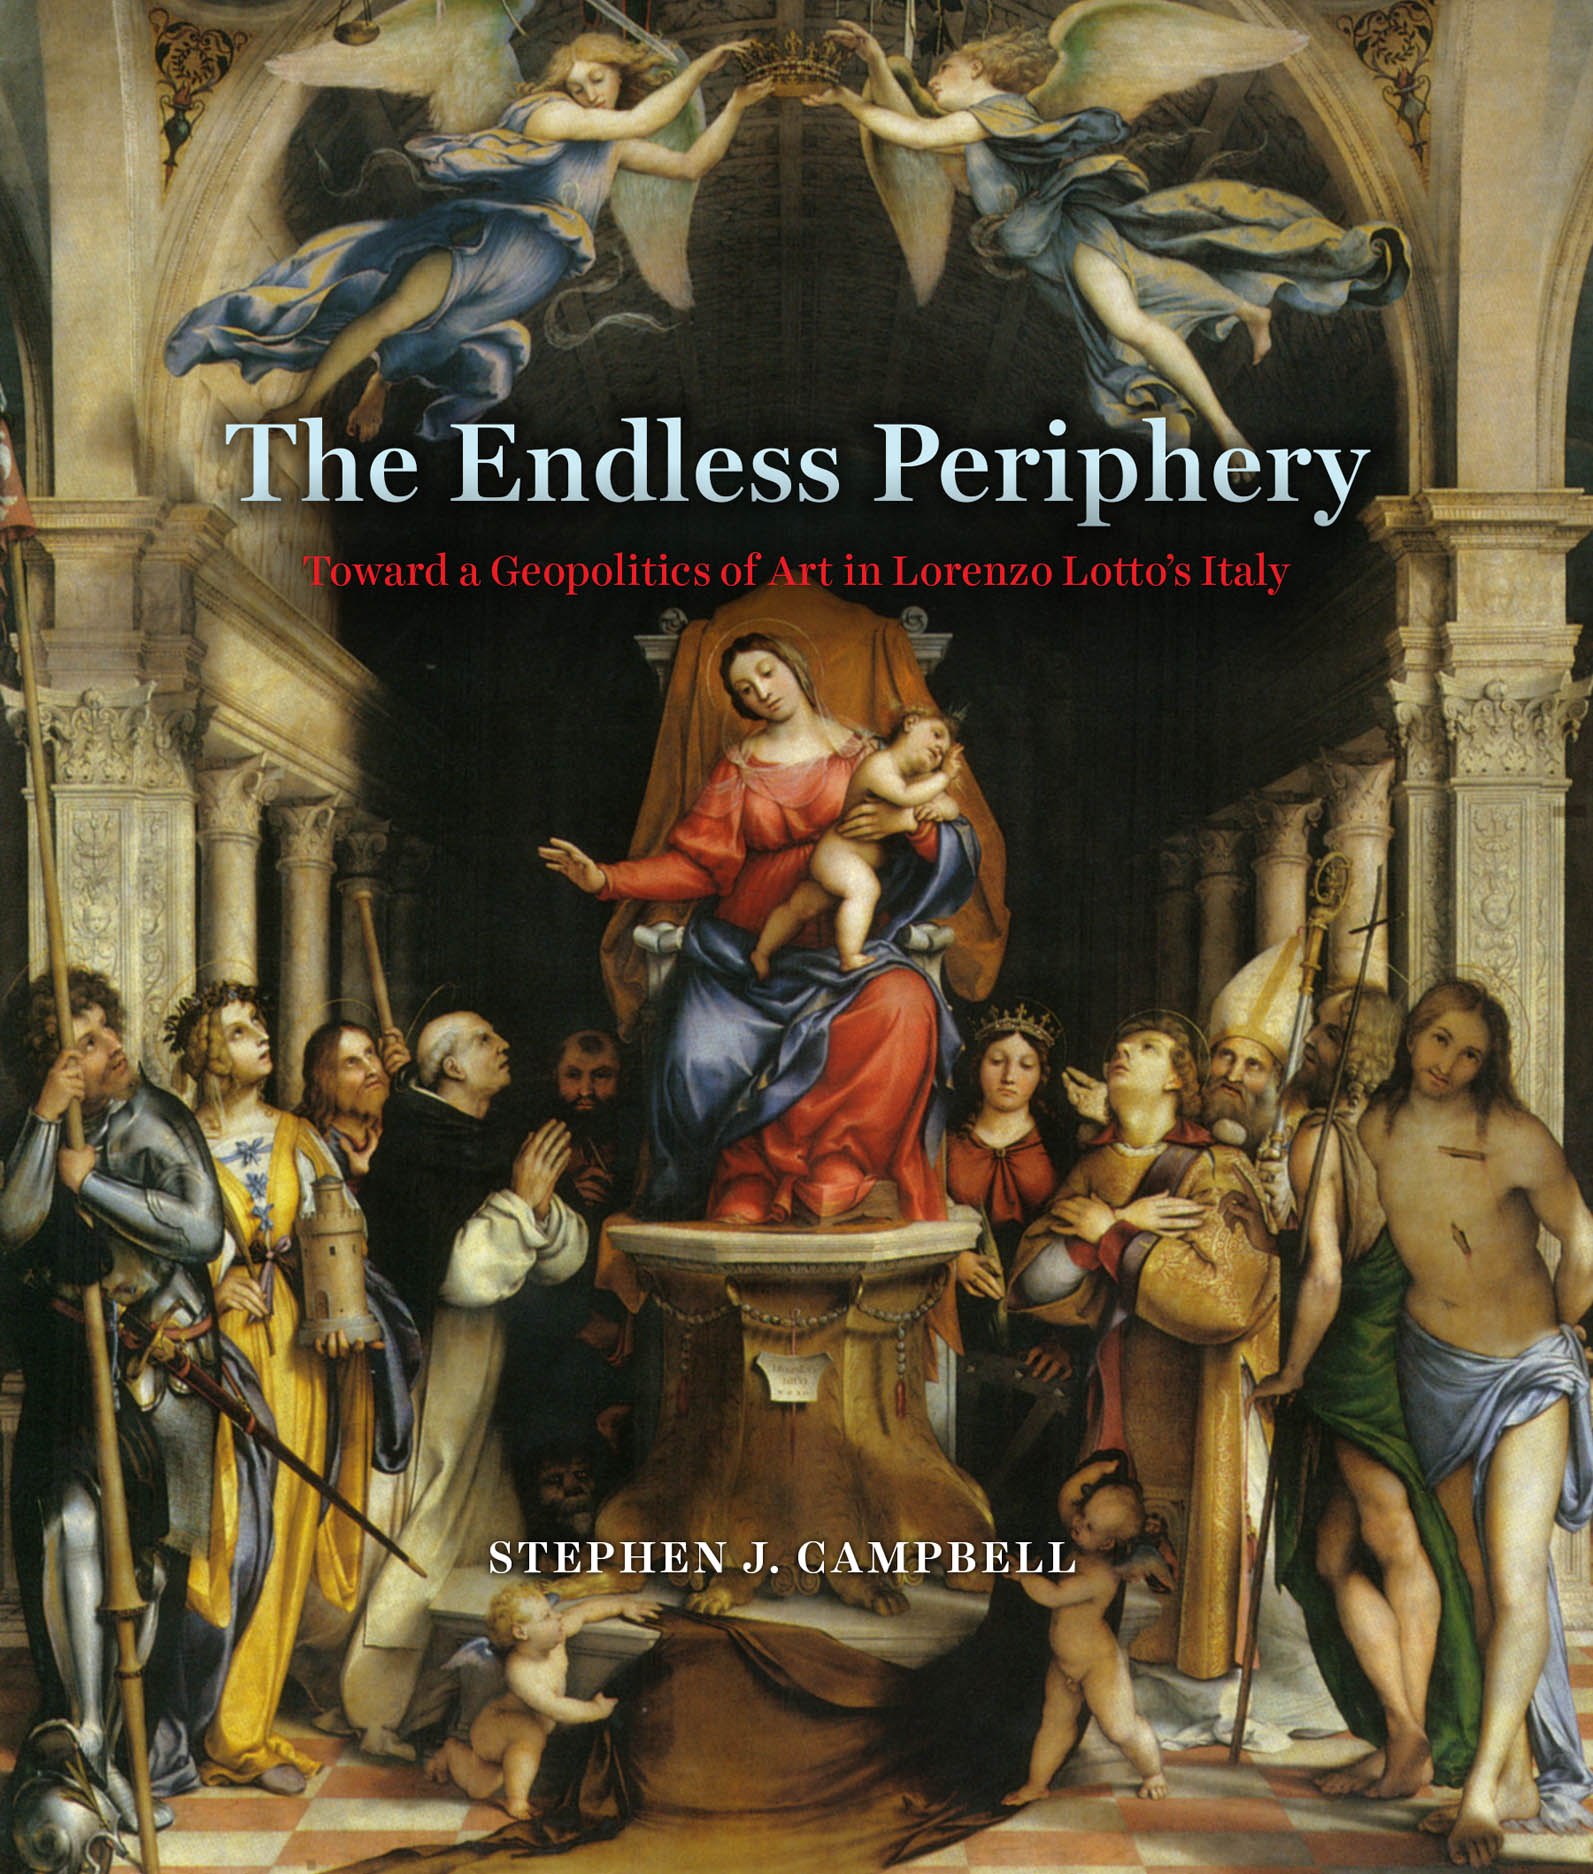 The Endless Periphery: Toward a Geopolitics of Art in Lorenzo Lotto's Italy